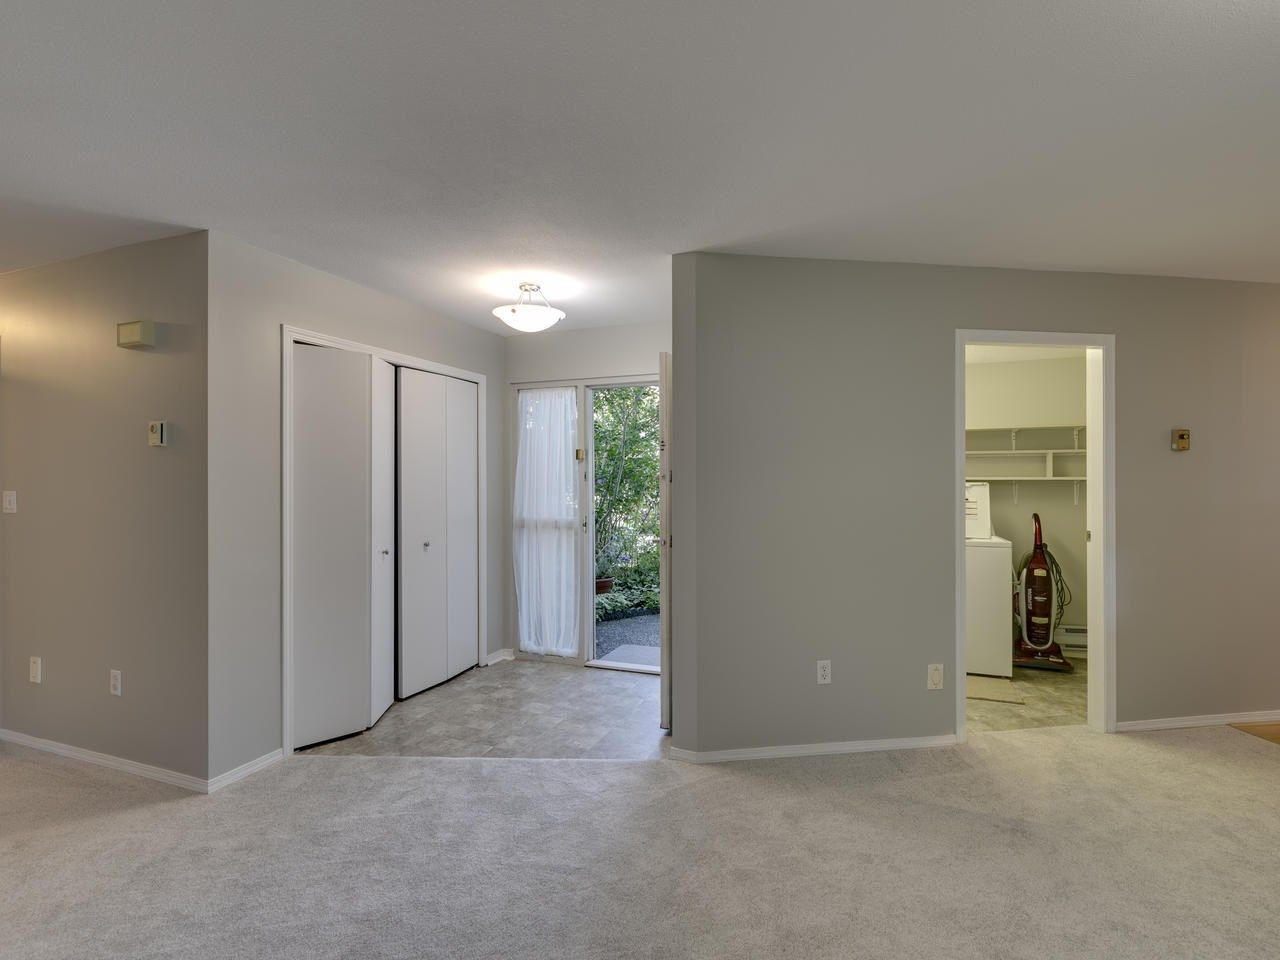 """Photo 20: Photos: 127 22555 116 Avenue in Maple Ridge: East Central Townhouse for sale in """"HILLSIDE"""" : MLS®# R2493046"""